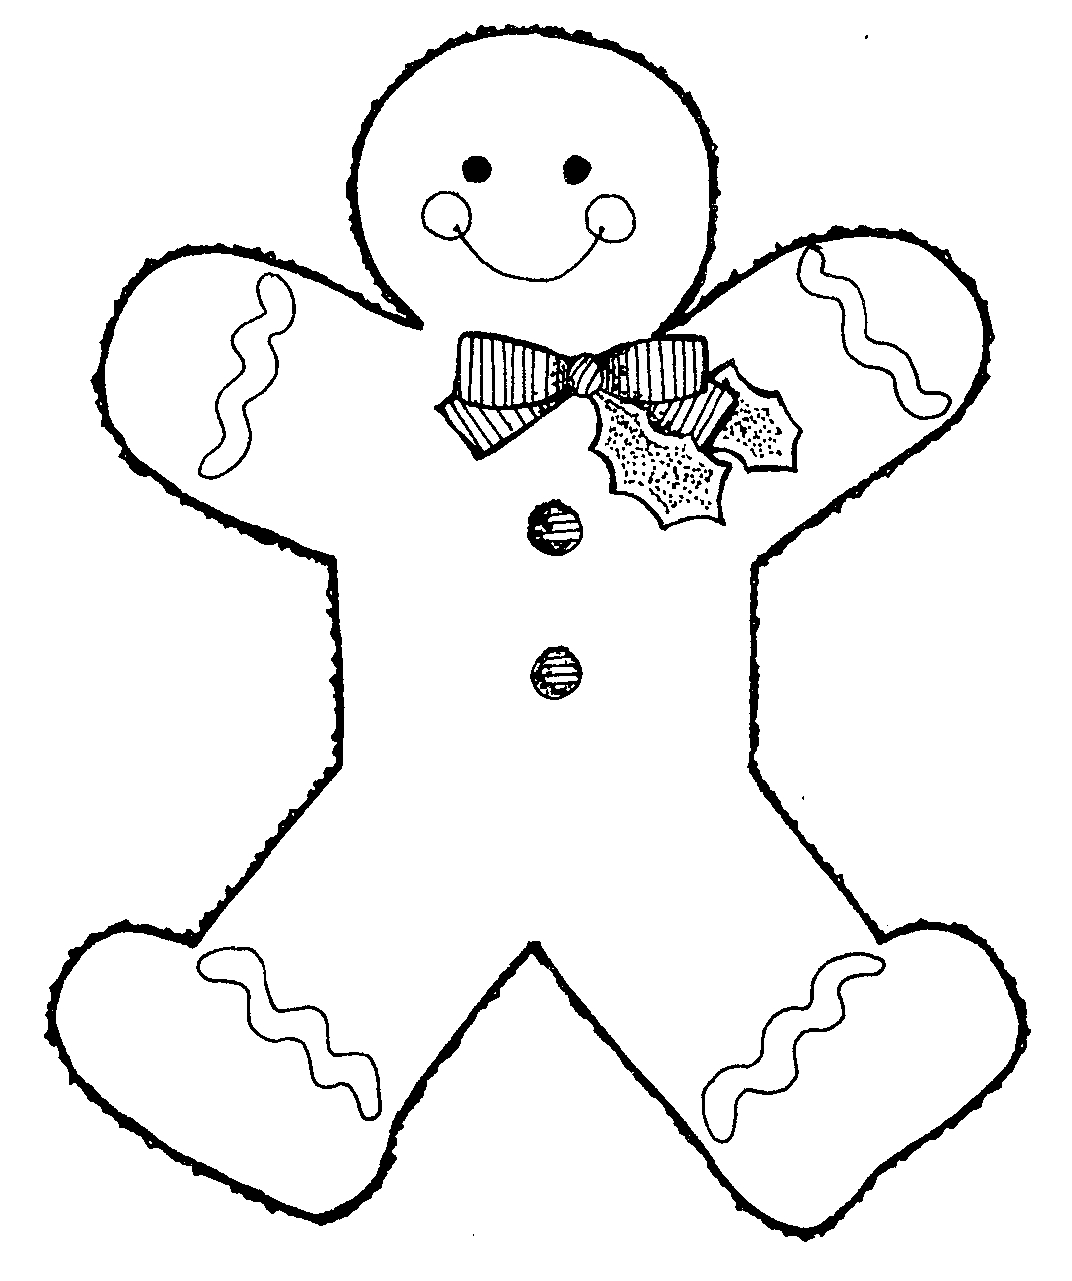 gingerbread man coloring pictures ginger man coloring page coloring home coloring pictures gingerbread man